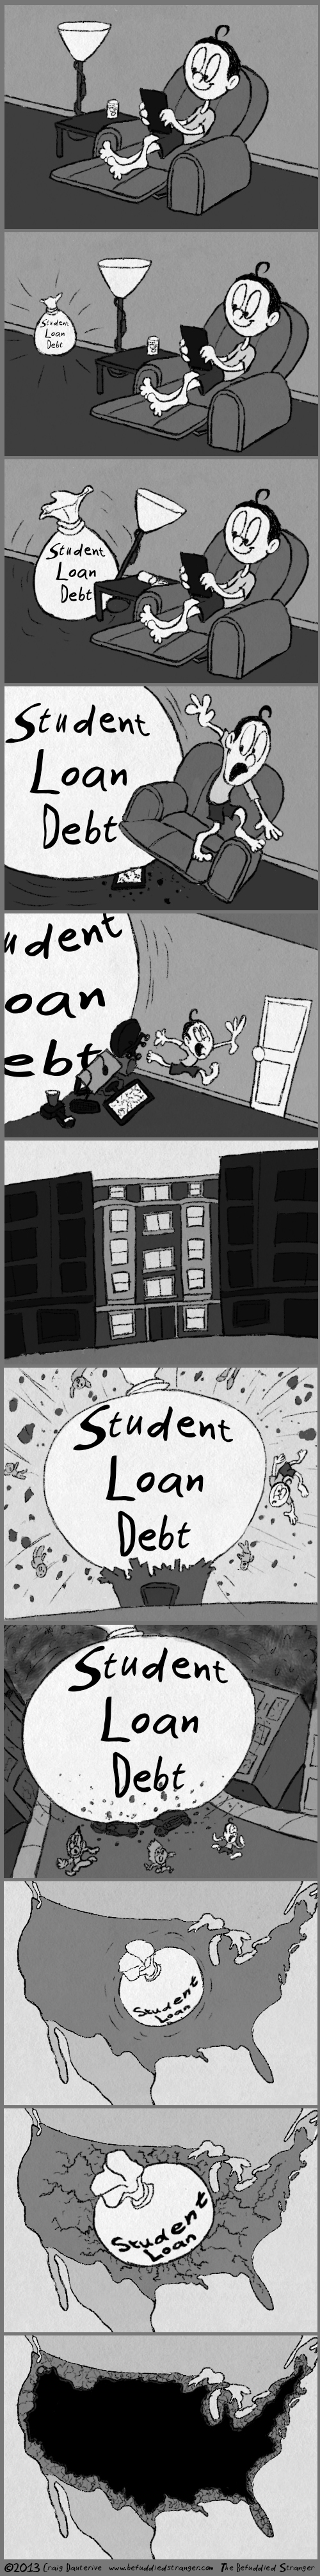 debt funny sad but true student loans web comics - 7903840768